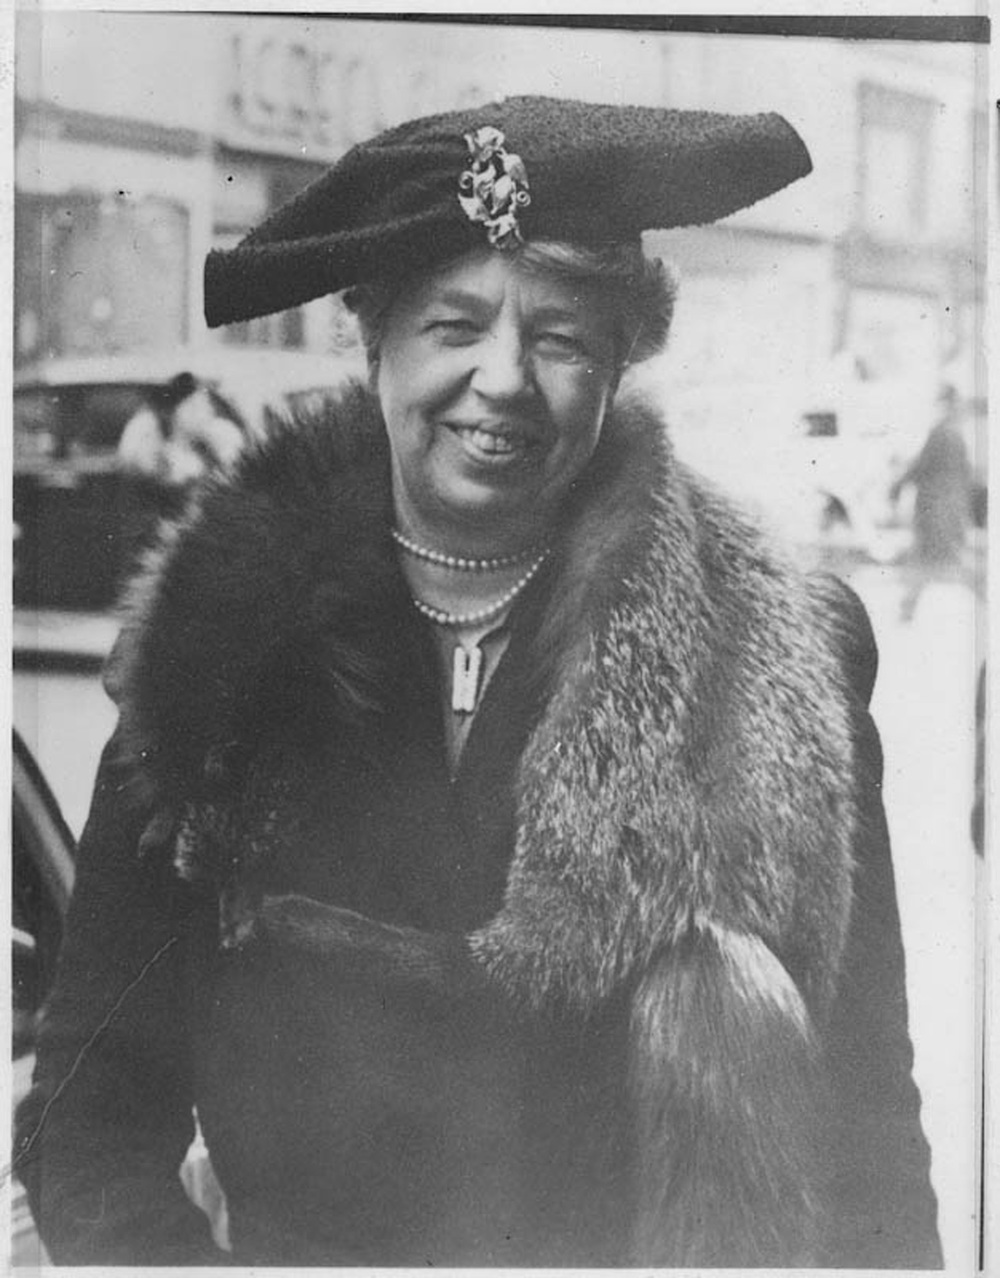 Eleanor Roosevelt, Fifth Avenue, Dec. 20, 1940, Franklin D. Roosevelt Presidential Library and Museum